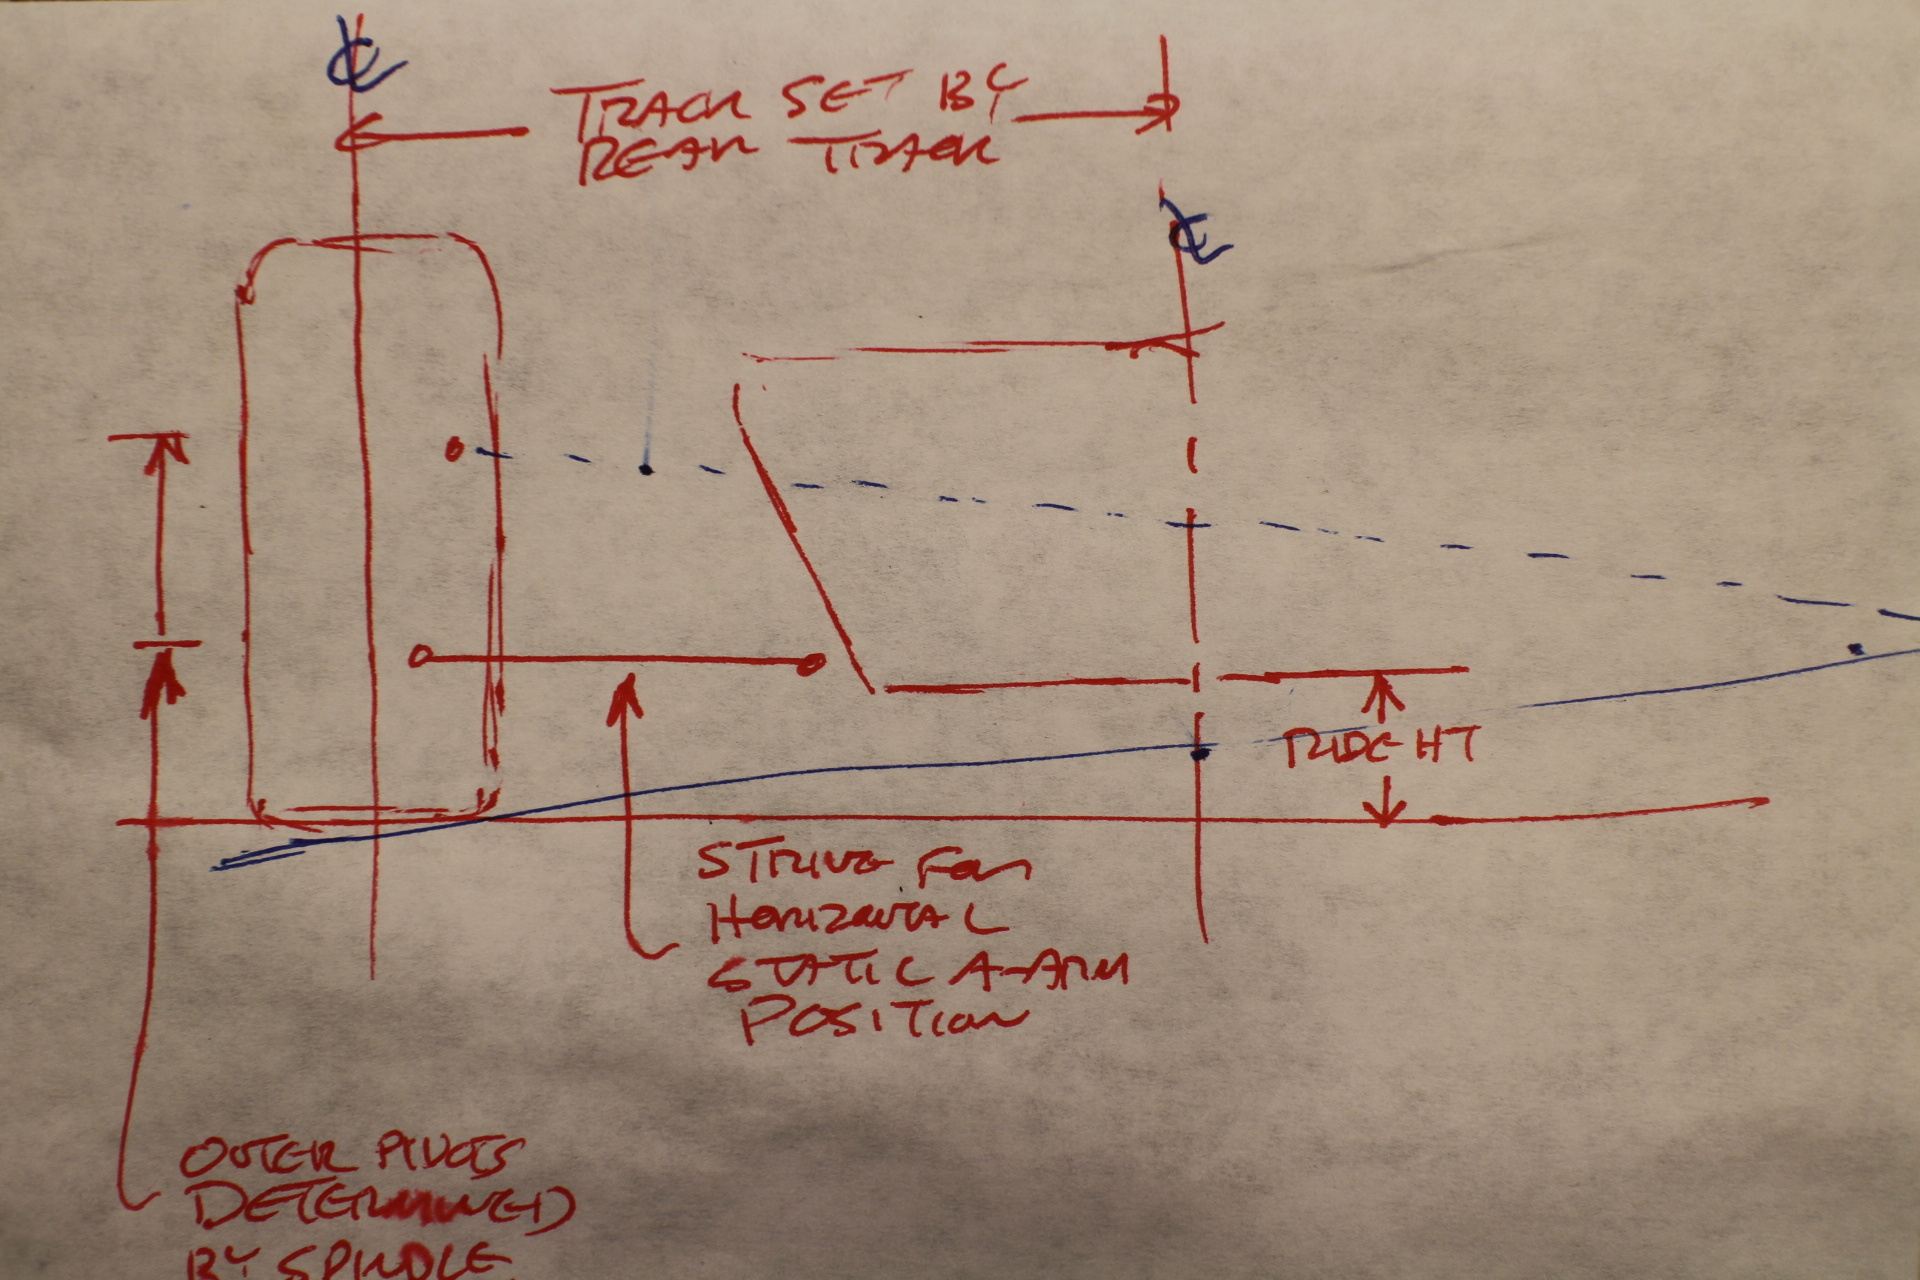 Locost Jerrys Build Log Jegs Roll Control Wiring Diagram Napkin Suspension Geometry Sketch